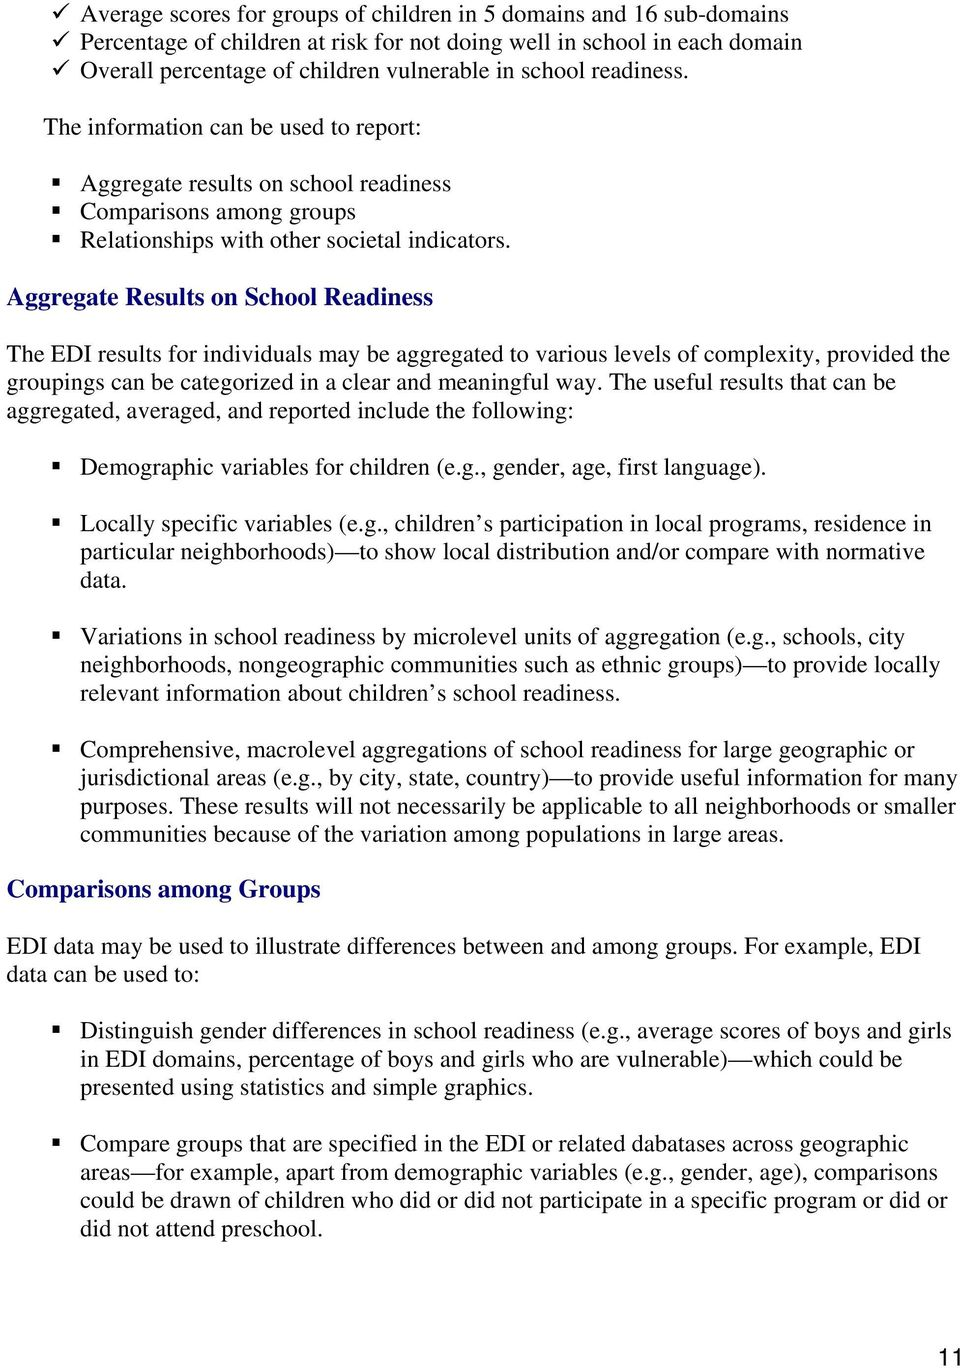 Aggregate Results on School Readiness The EDI results for individuals may be aggregated to various levels of complexity, provided the groupings can be categorized in a clear and meaningful way.